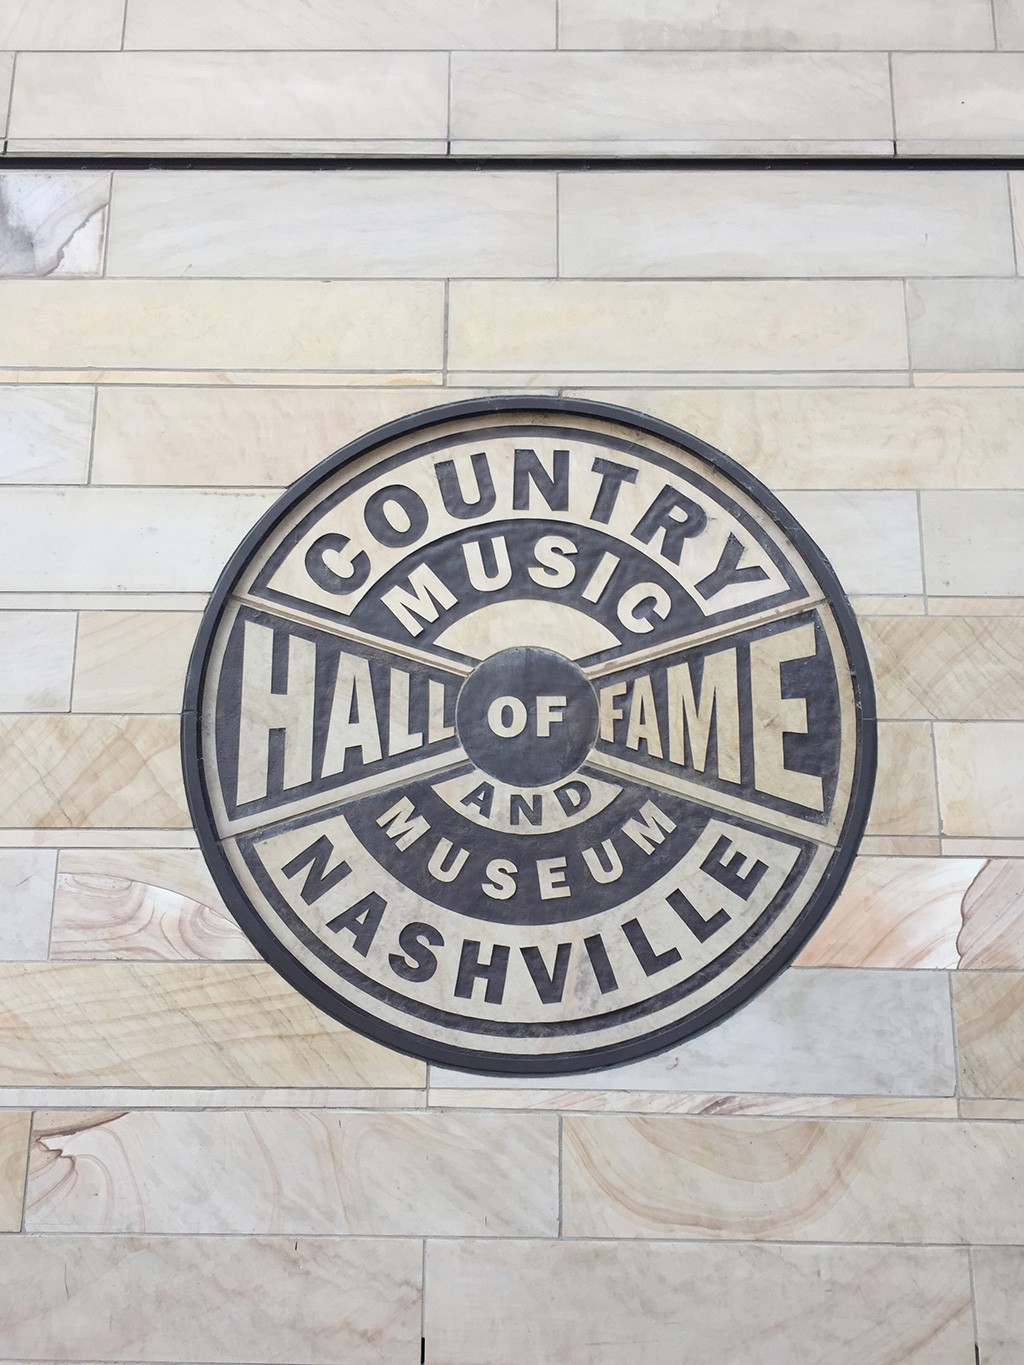 At the entrance to the Country Music Hall of Fame in Nashville